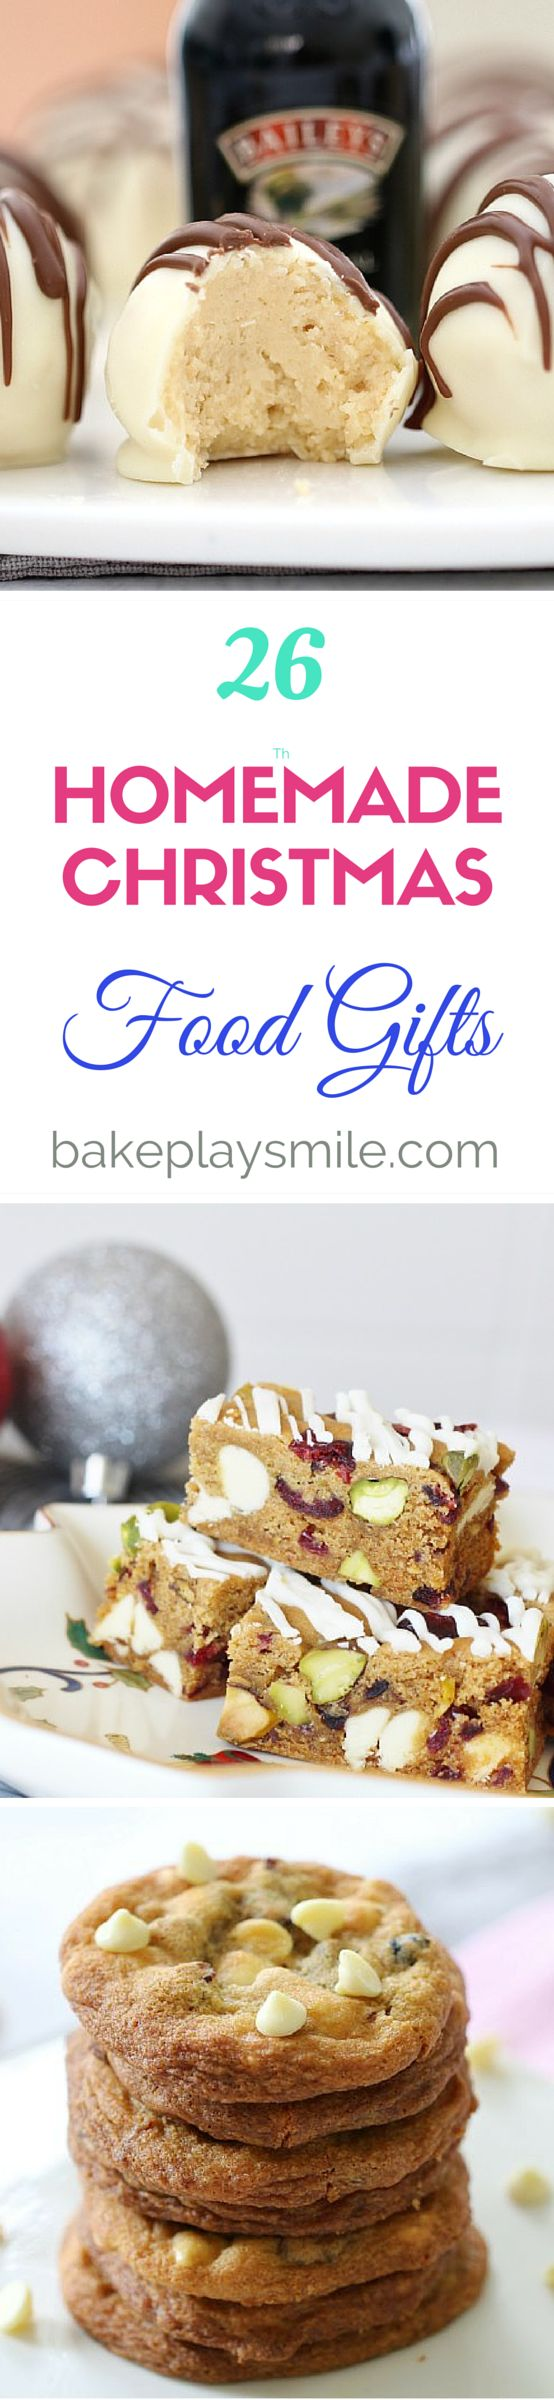 Homemade Christmas Gift Ideas From The Kitchen. 60 diy christmas ...